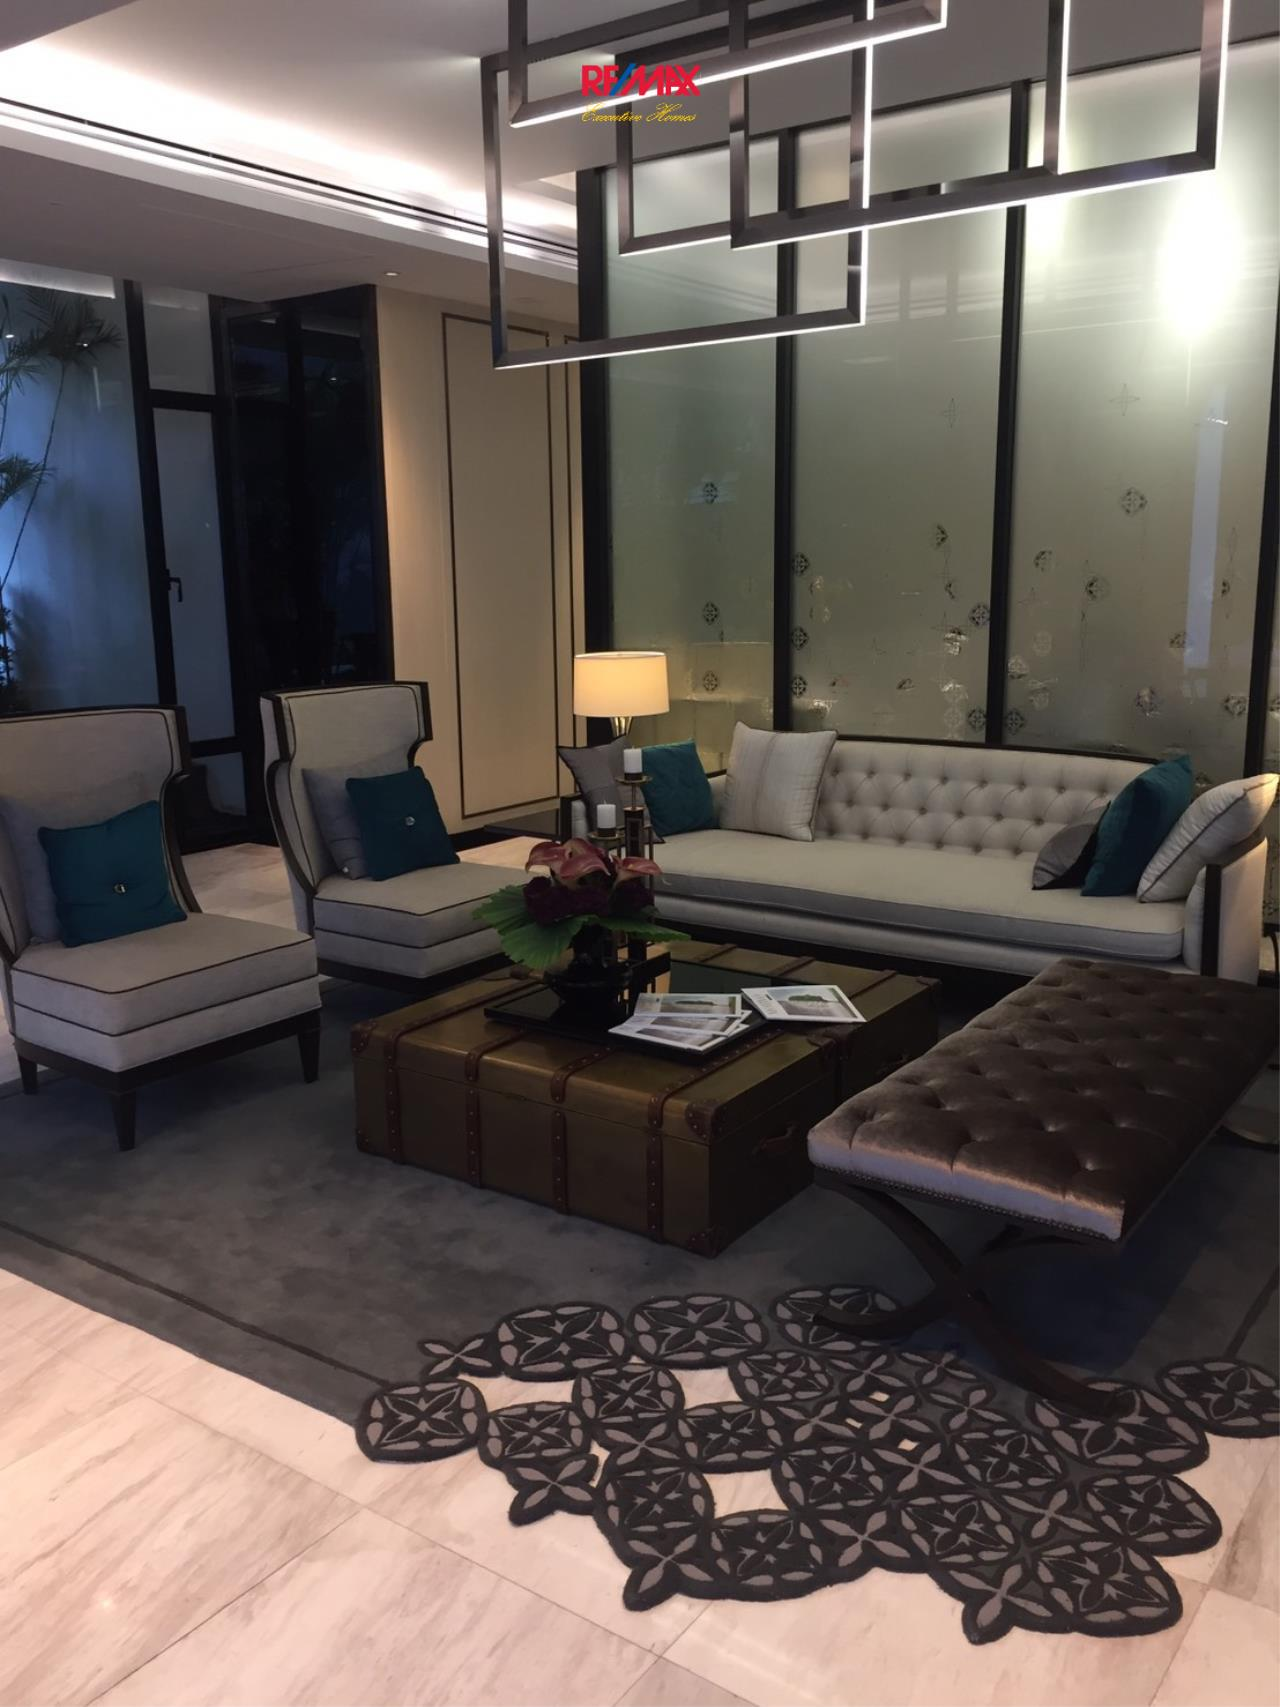 RE/MAX Executive Homes Agency's Spacious 1 Bedroom for Sale The Room Sathorn Pun 3